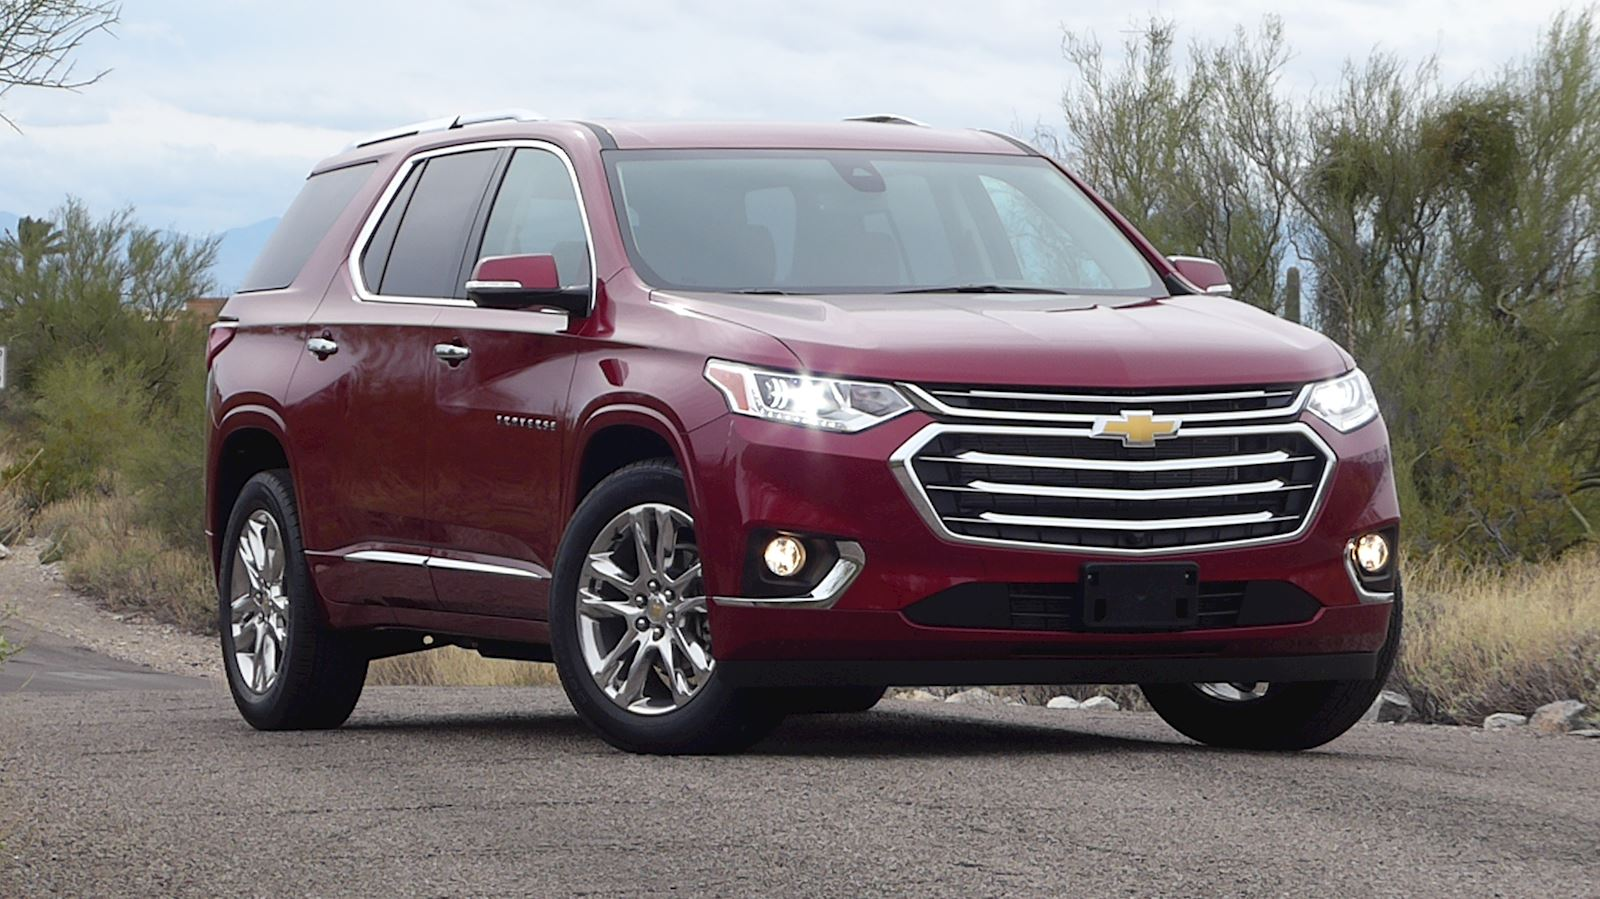 2020 Chevrolet Traverse front and side view